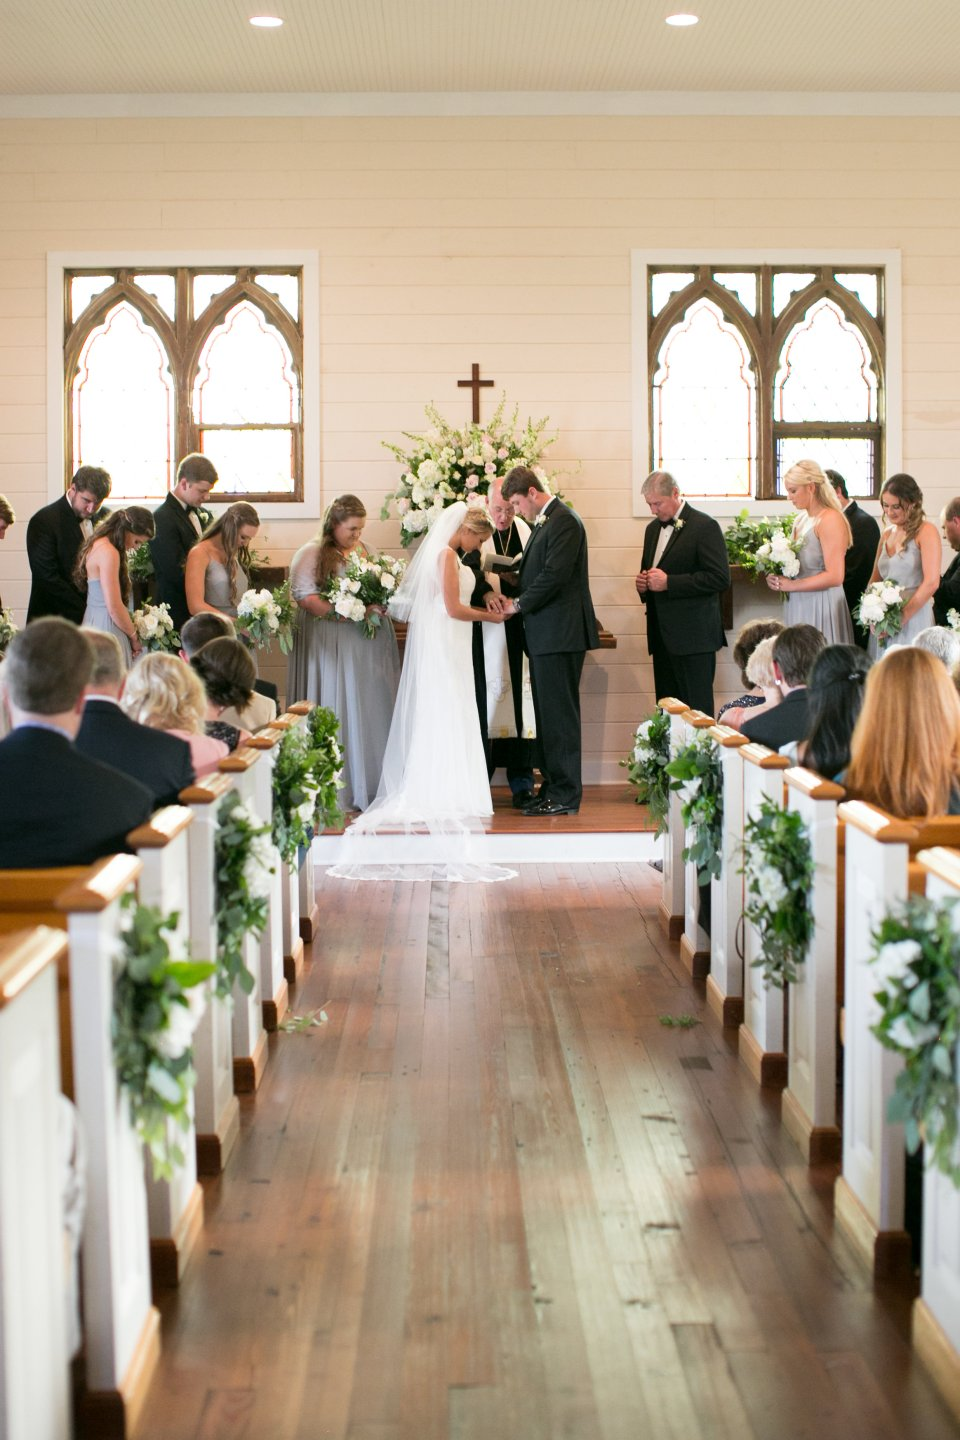 Classic southern wedding in oxford mississippi at Plein Air